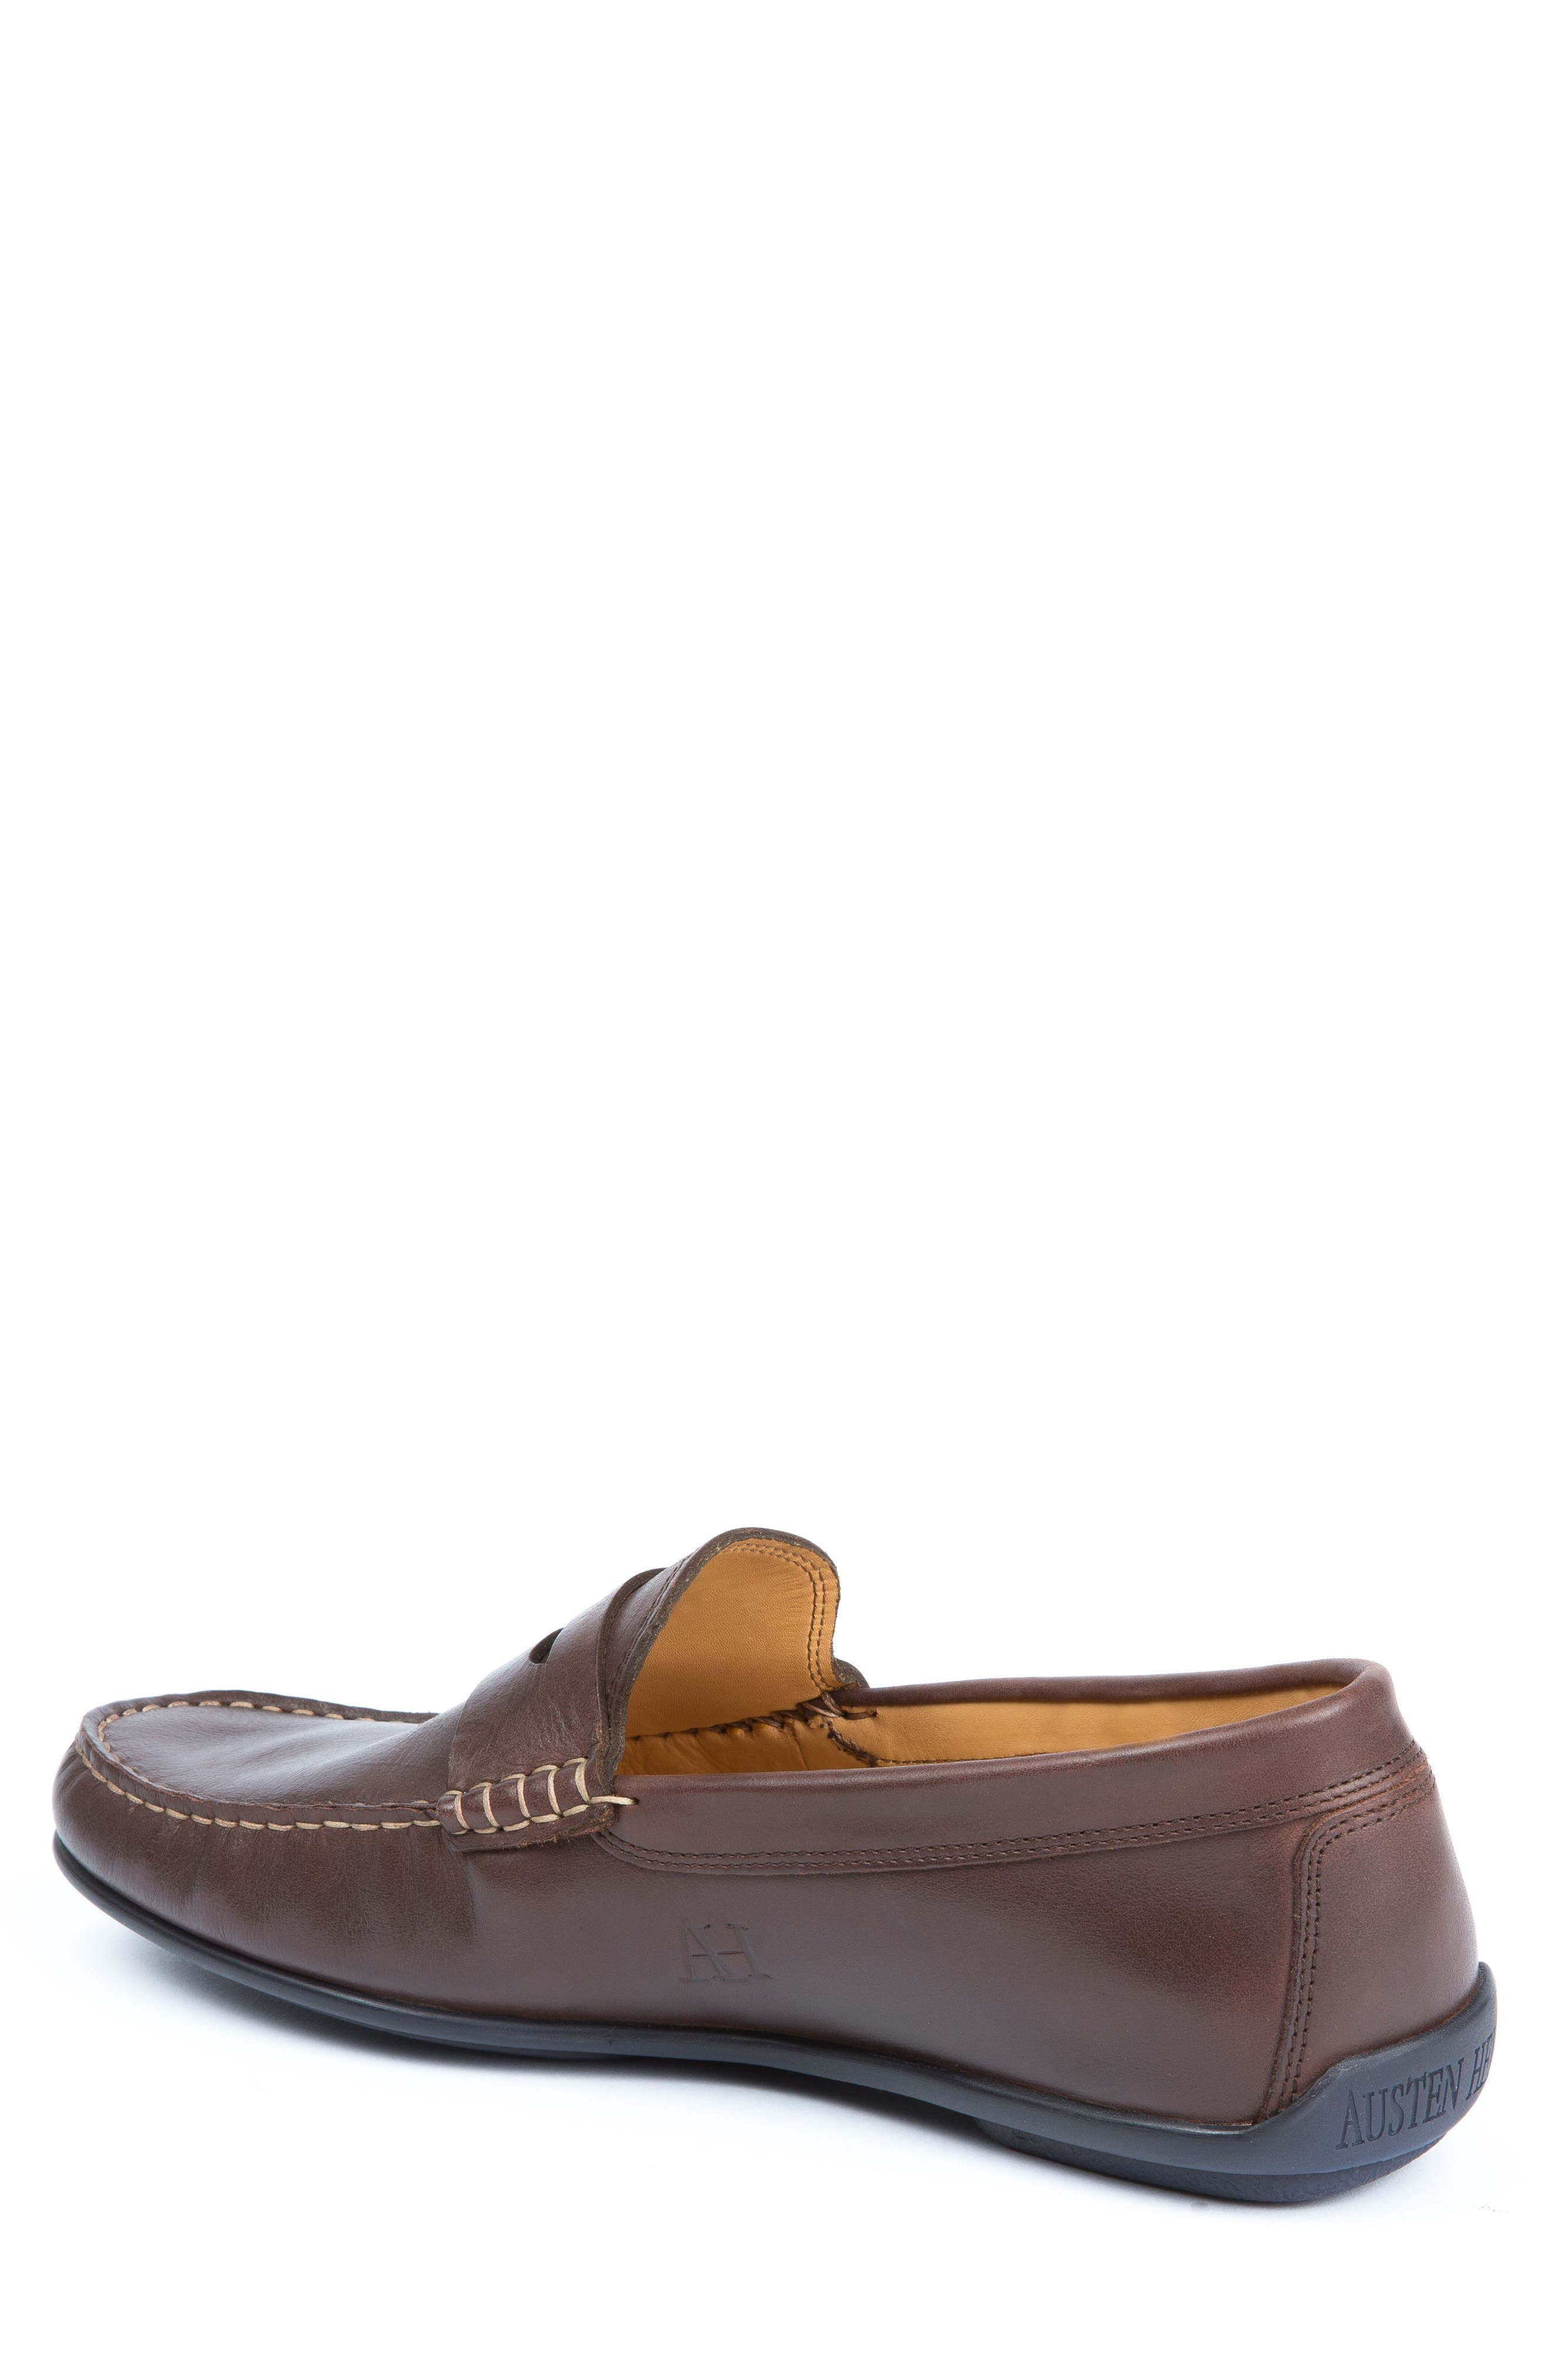 'Strattons' Driving Shoe,                             Alternate thumbnail 2, color,                             BROWN LEATHER/ NAVY